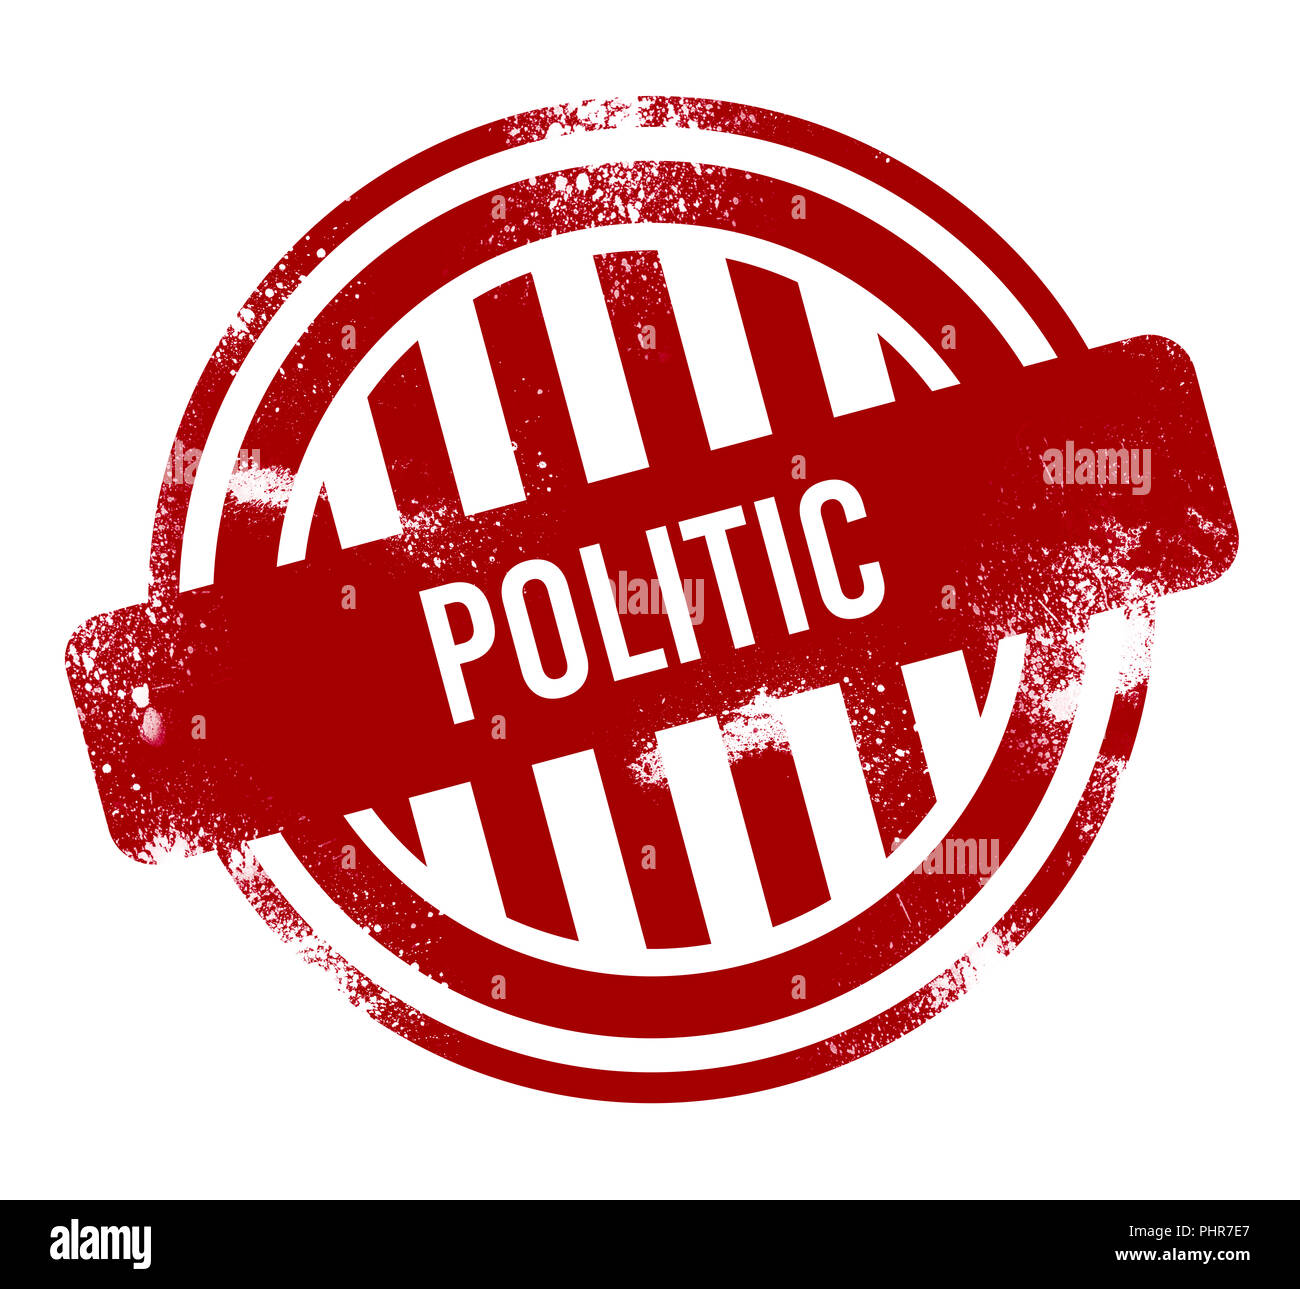 politic - red grunge button, stamp - Stock Image